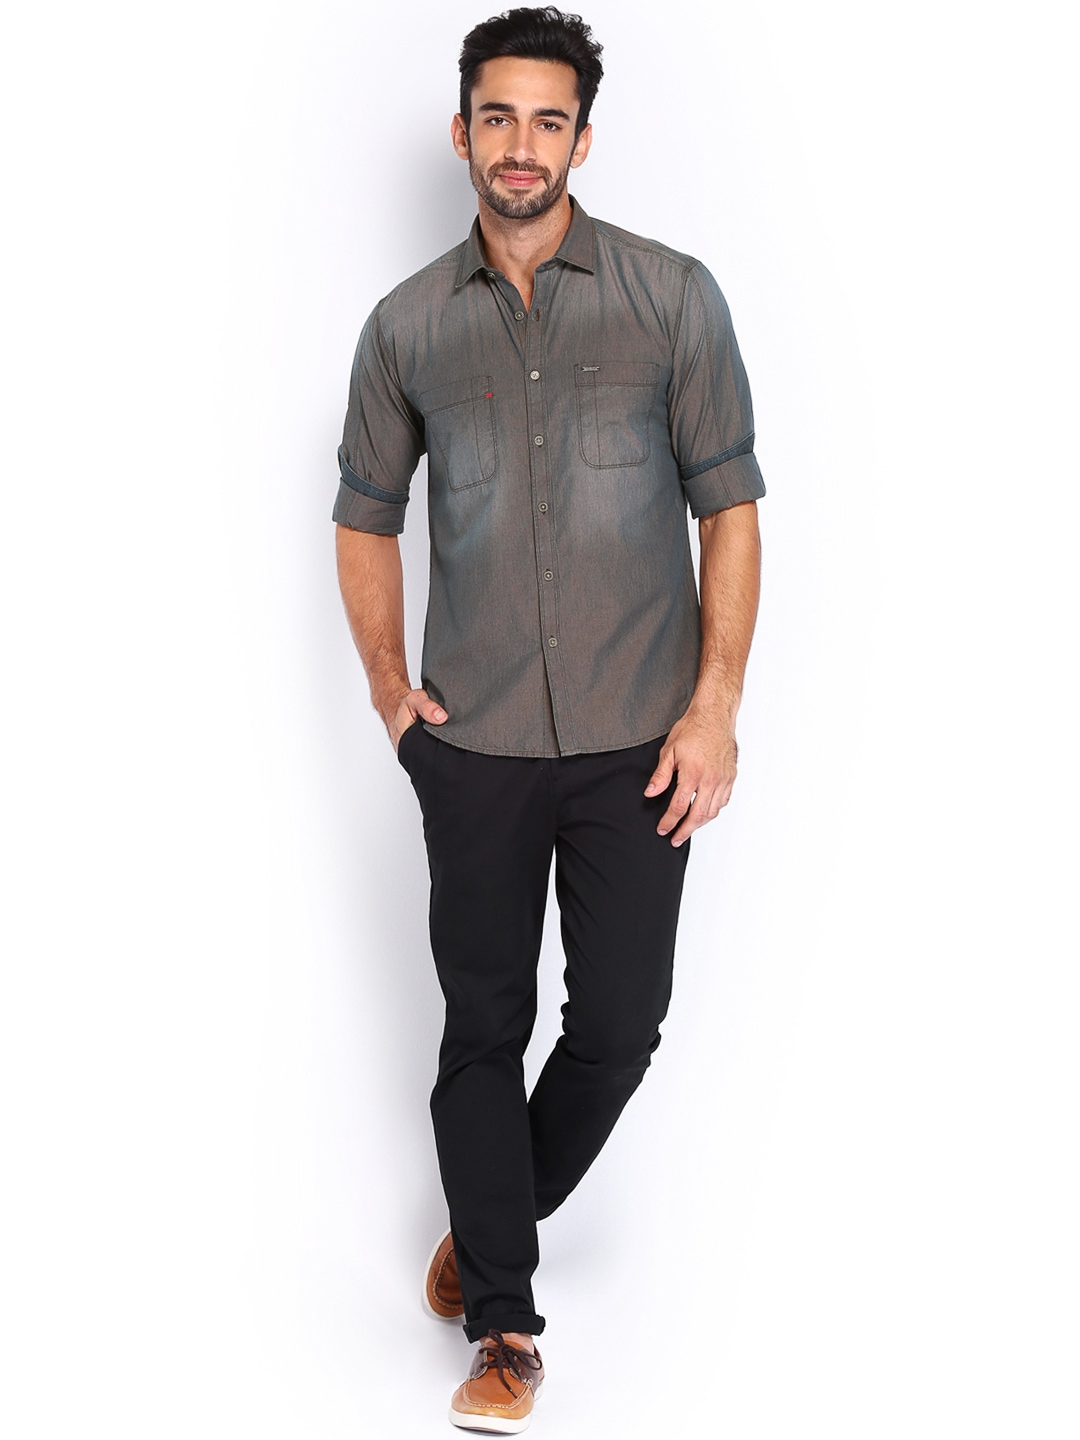 This weekend-perfect casual shirt features a button-down collar and two Amazon Essentials Men's Regular-Fit Long-Sleeve Gingham Shirt. by Amazon Essentials. $ $ 18 00 Prime. Exclusively for Prime Members. Some sizes/colors are Prime eligible. out of 5 stars Product Features.